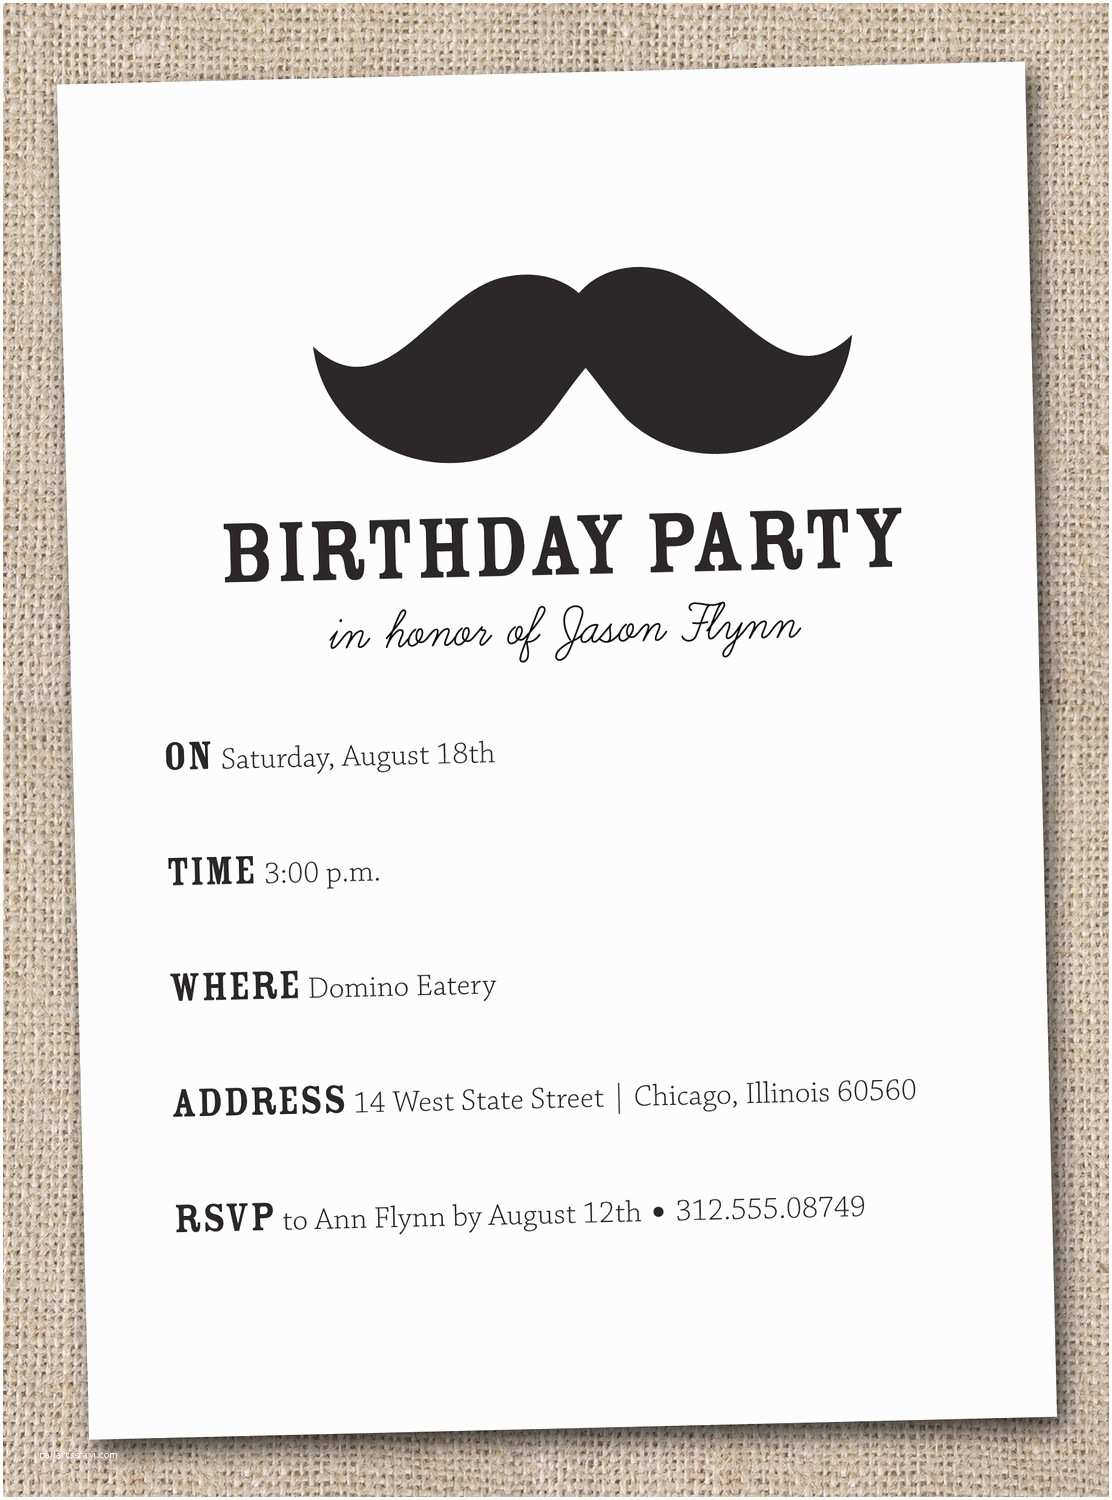 Design Party Invitations Imposing Mustache Birthday Party Invitations